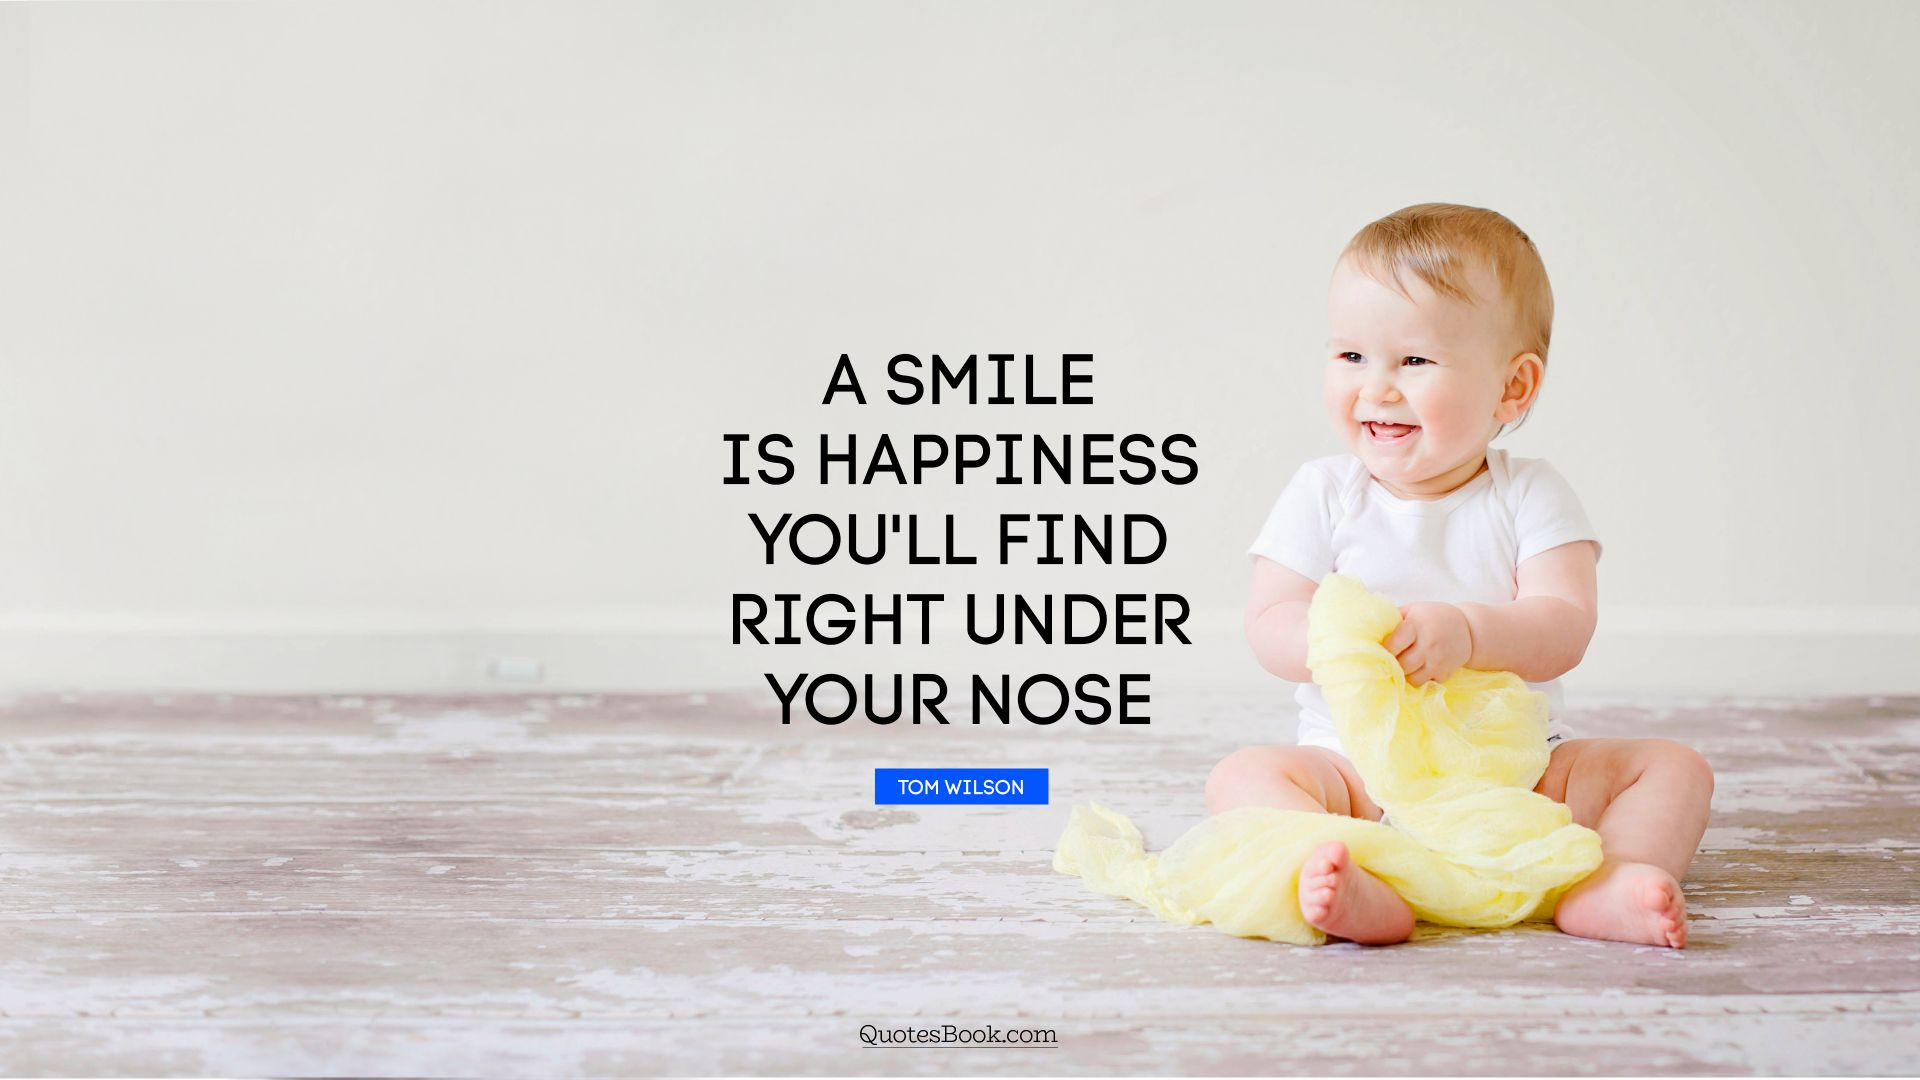 A smile is happiness you'll find right under your nose. - Quote by Tom Wilson